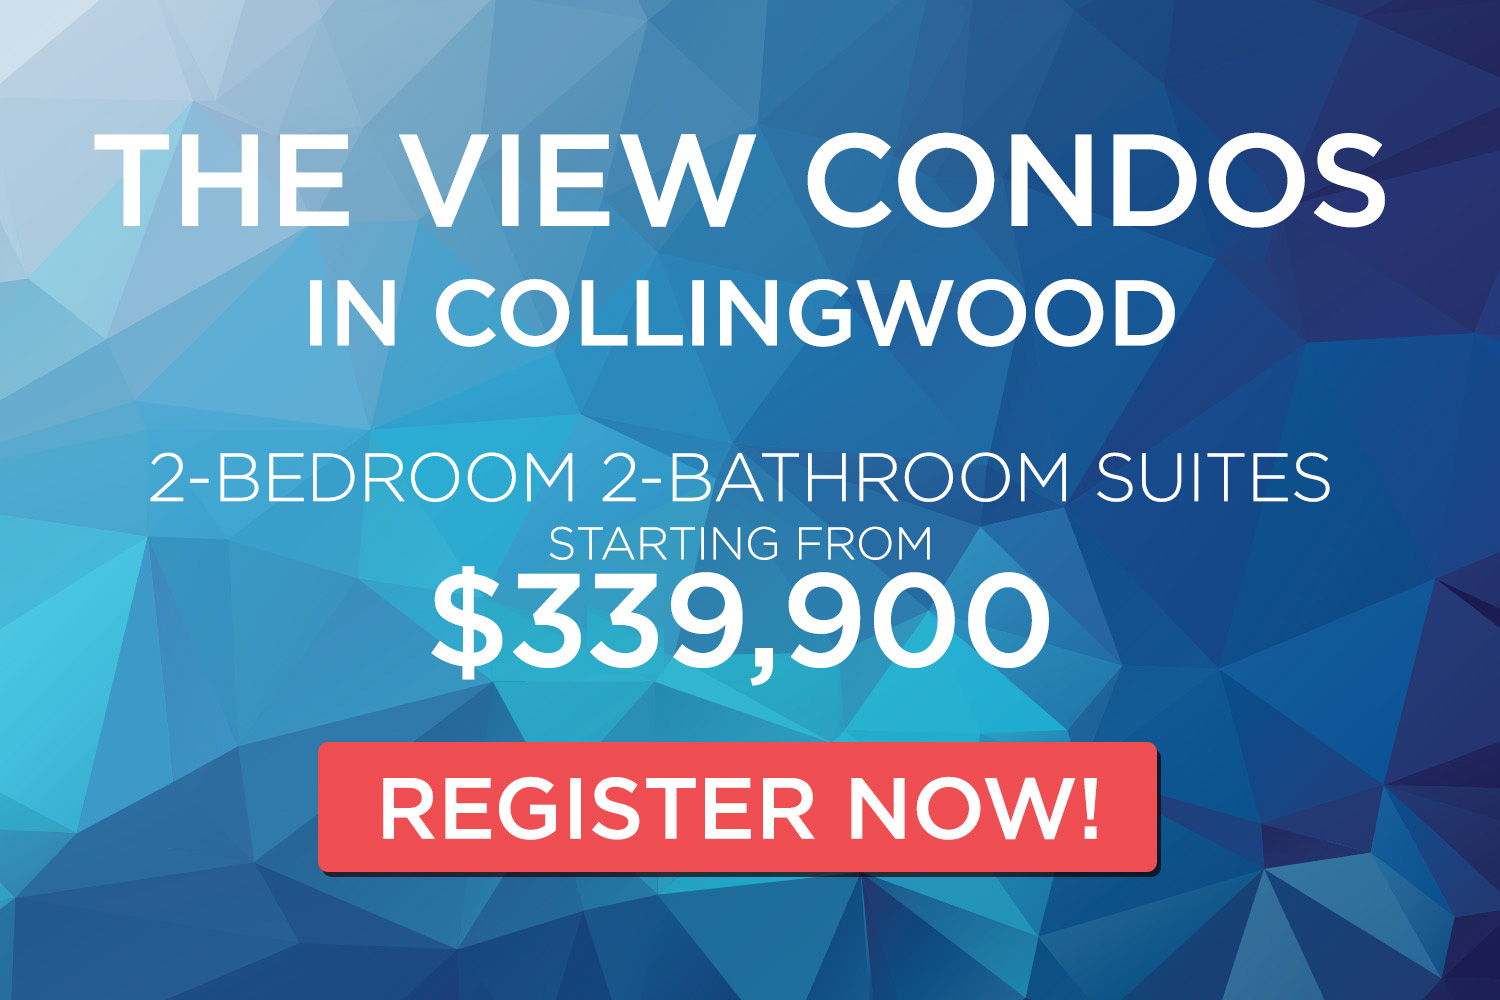 View Condos Coming Soon in Collingwood